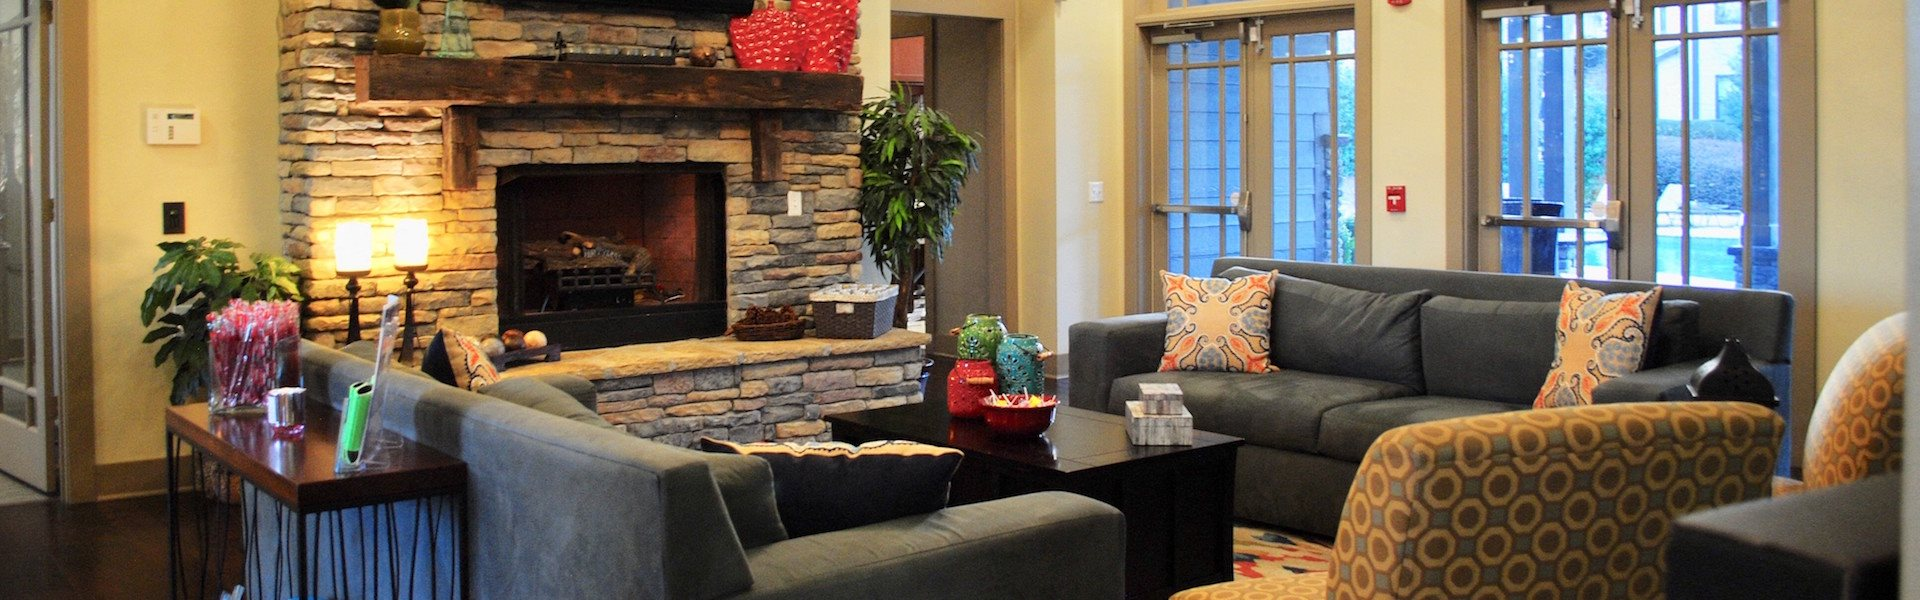 Outback Huntsville Al >> Apartments near UAH | Bridgewater Apartment Homes